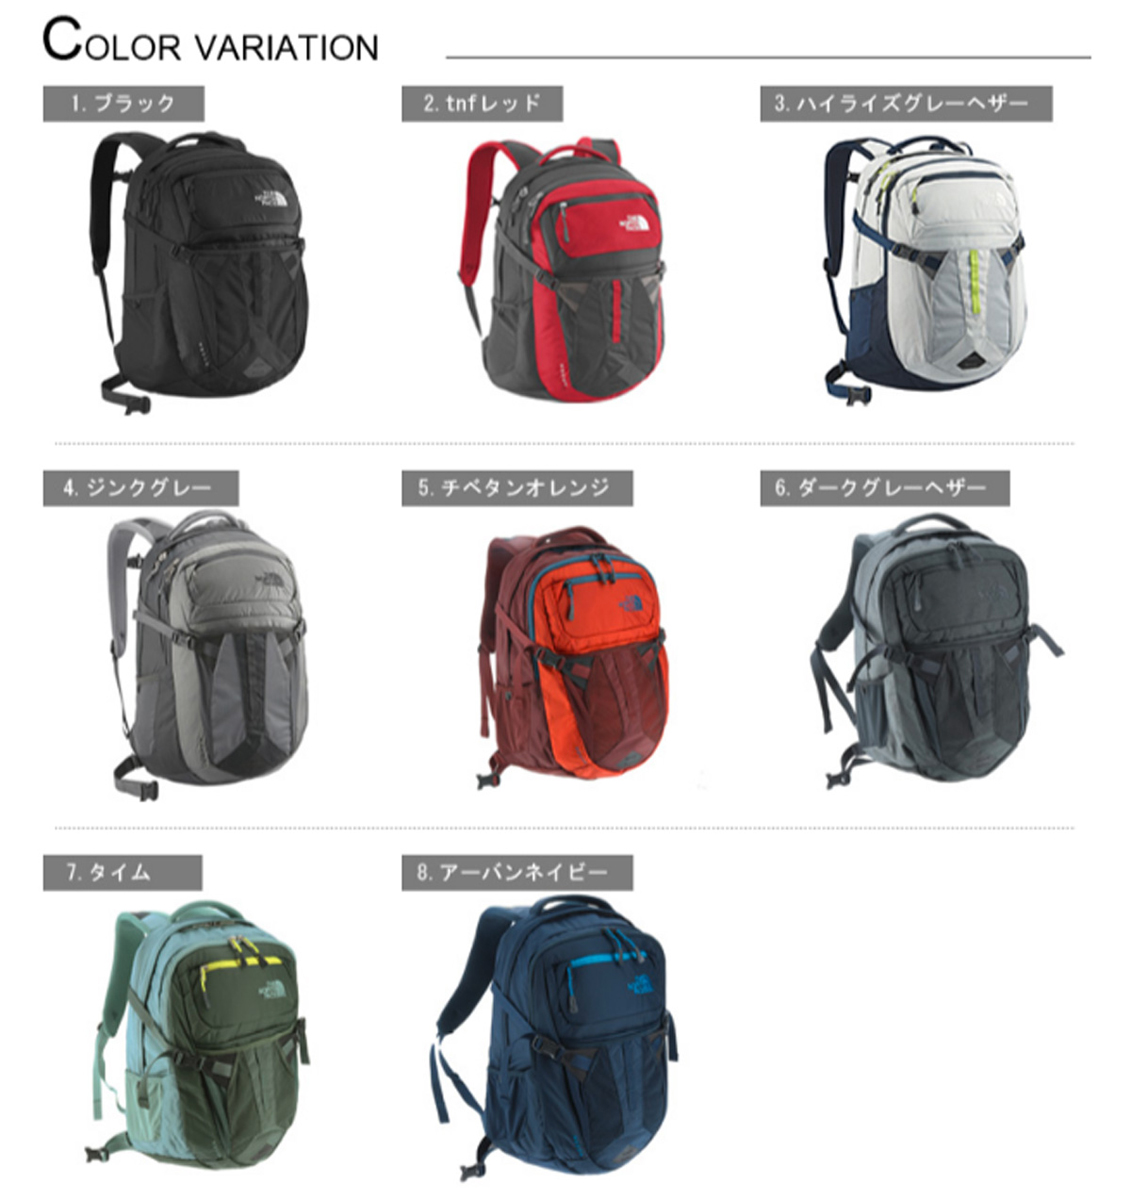 Suitcase World The North Face Backpack Large Tendencies Back Pack Arcus Navy Daypack Recon Nm71553 Mens Ladies Commuter School Black Popular Outdoor Climbing B4 A4 Anime Manga